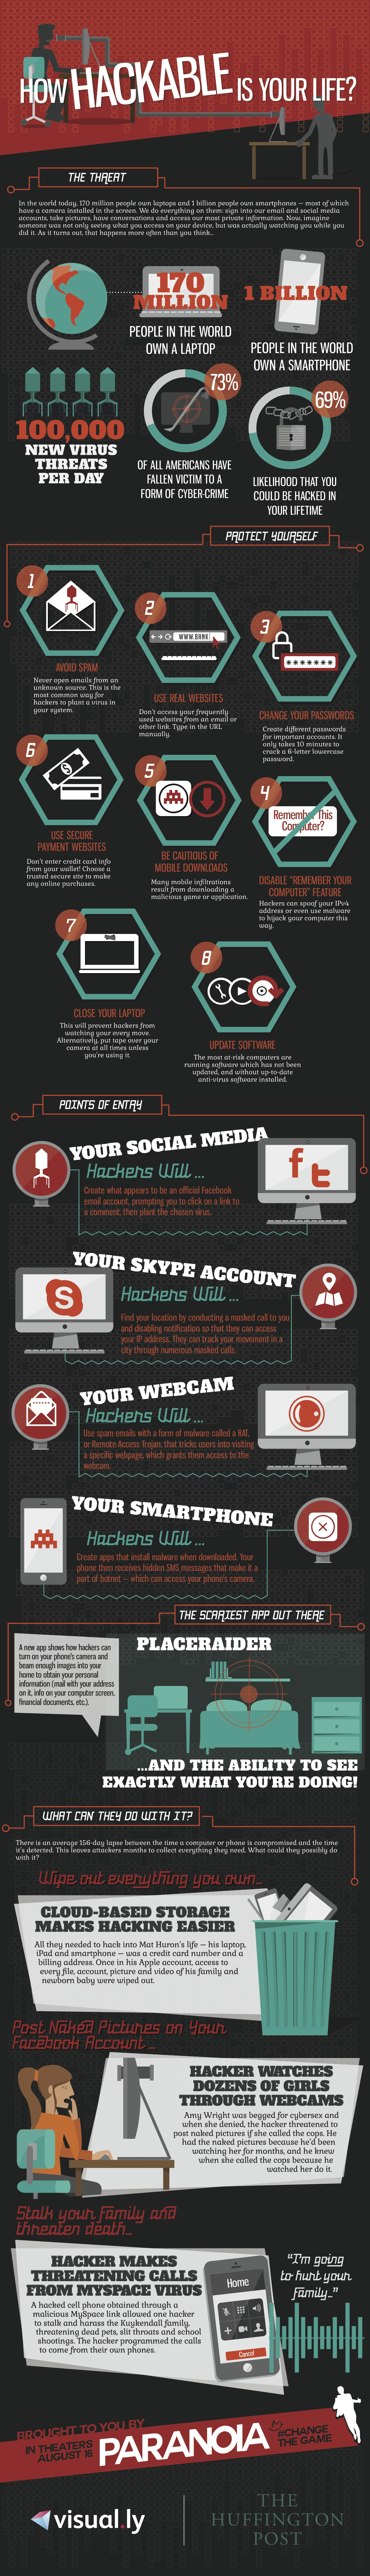 How Hackable Is Your Life & Everyday Tech? [Infographic]